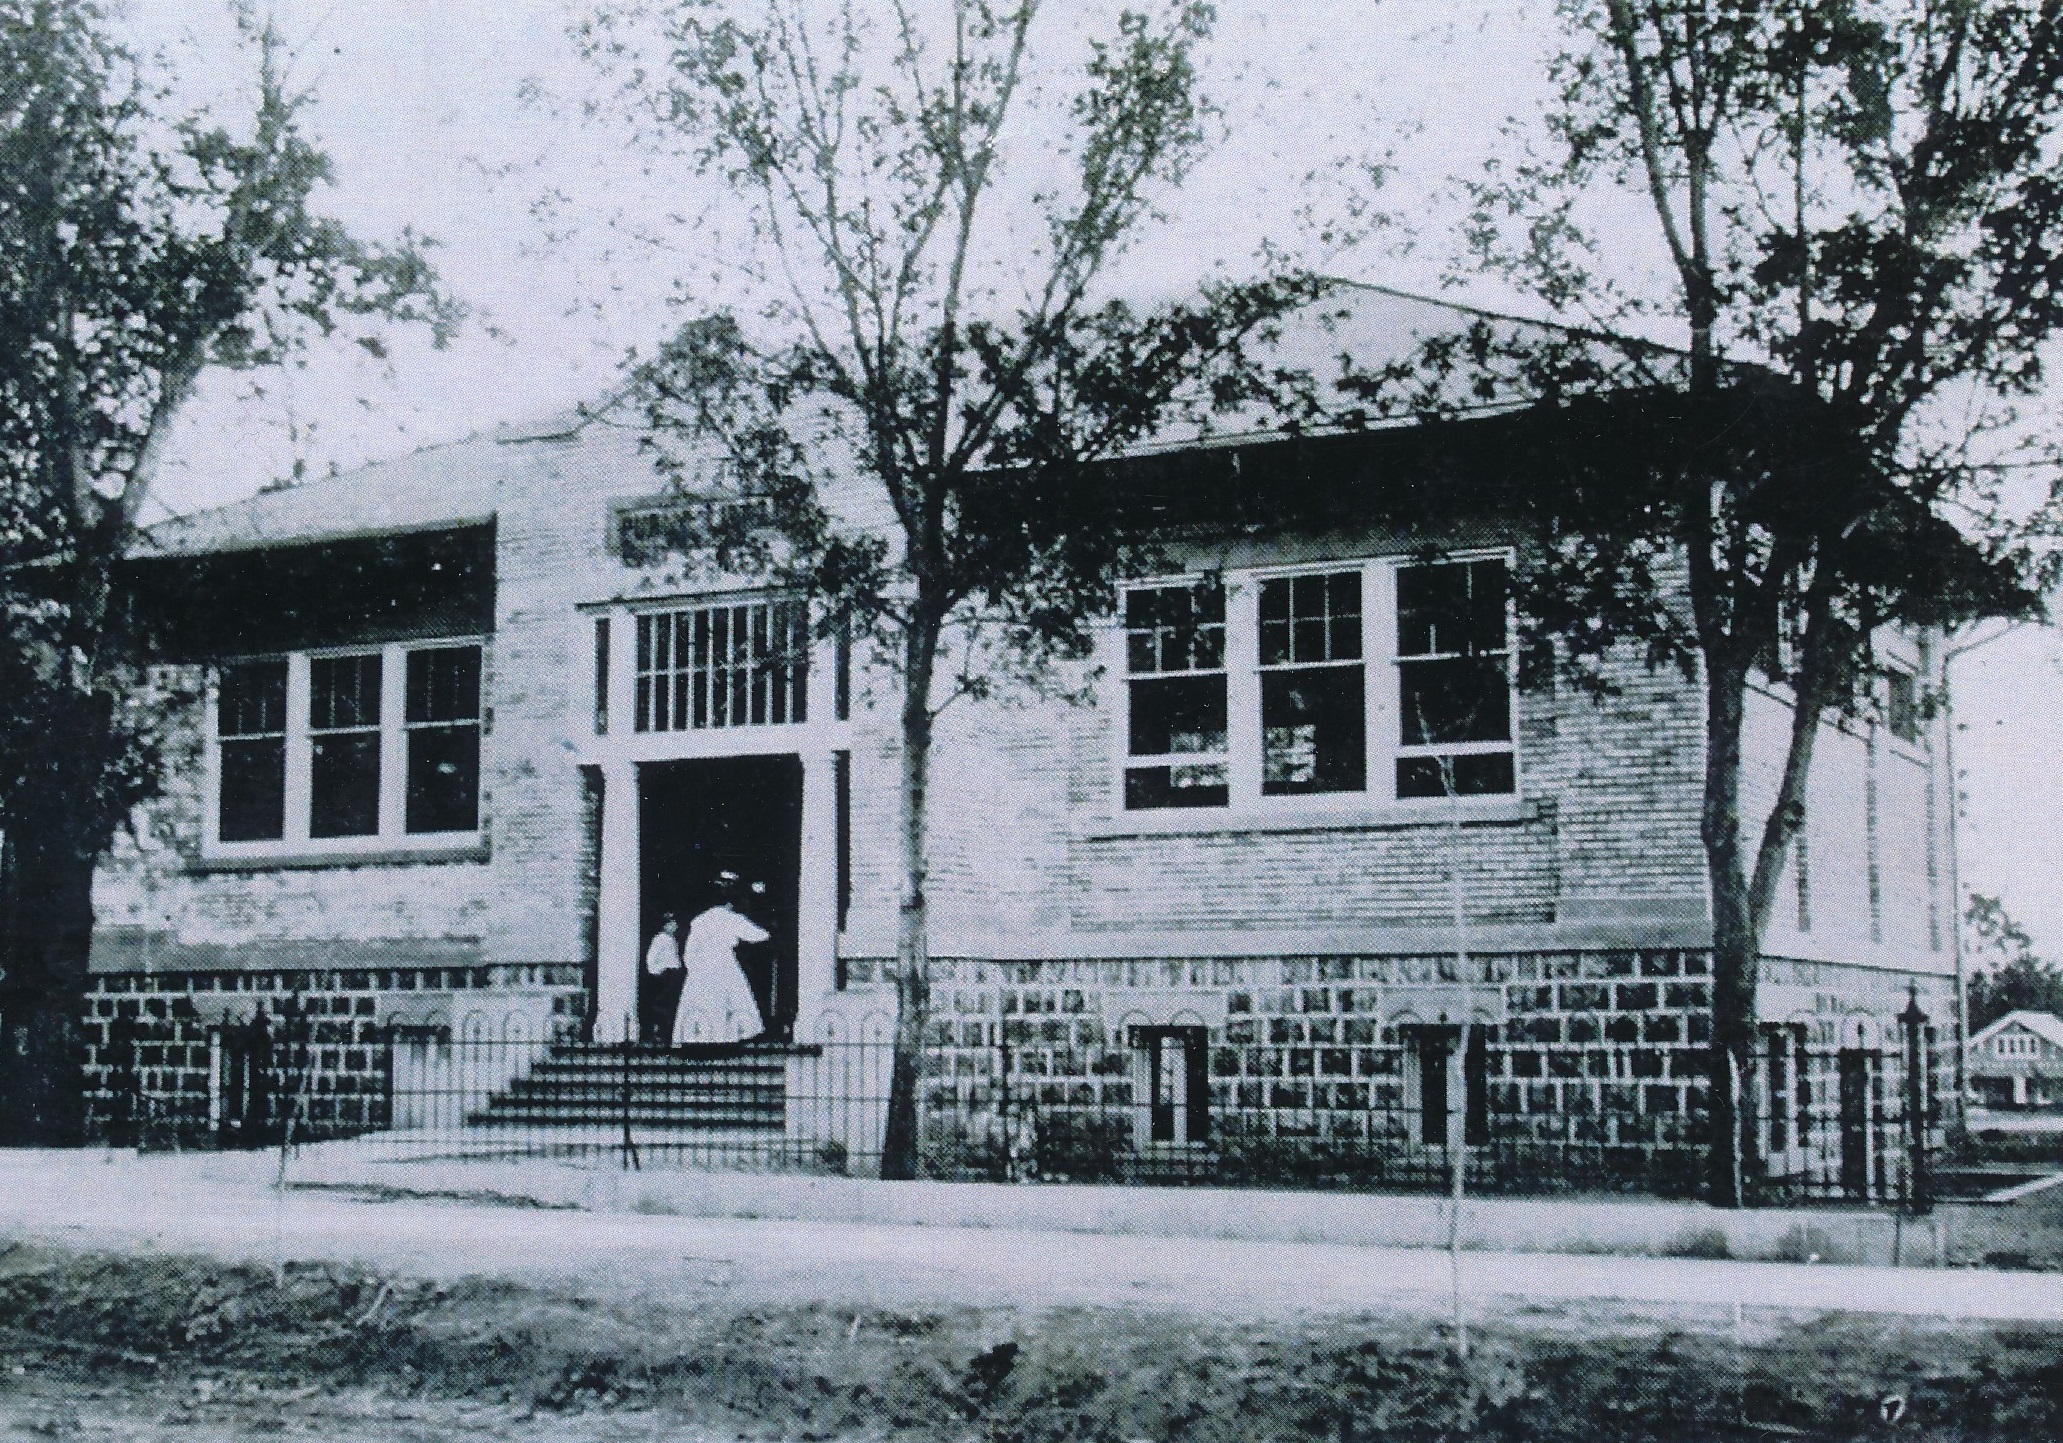 The old Carnegie Library Building